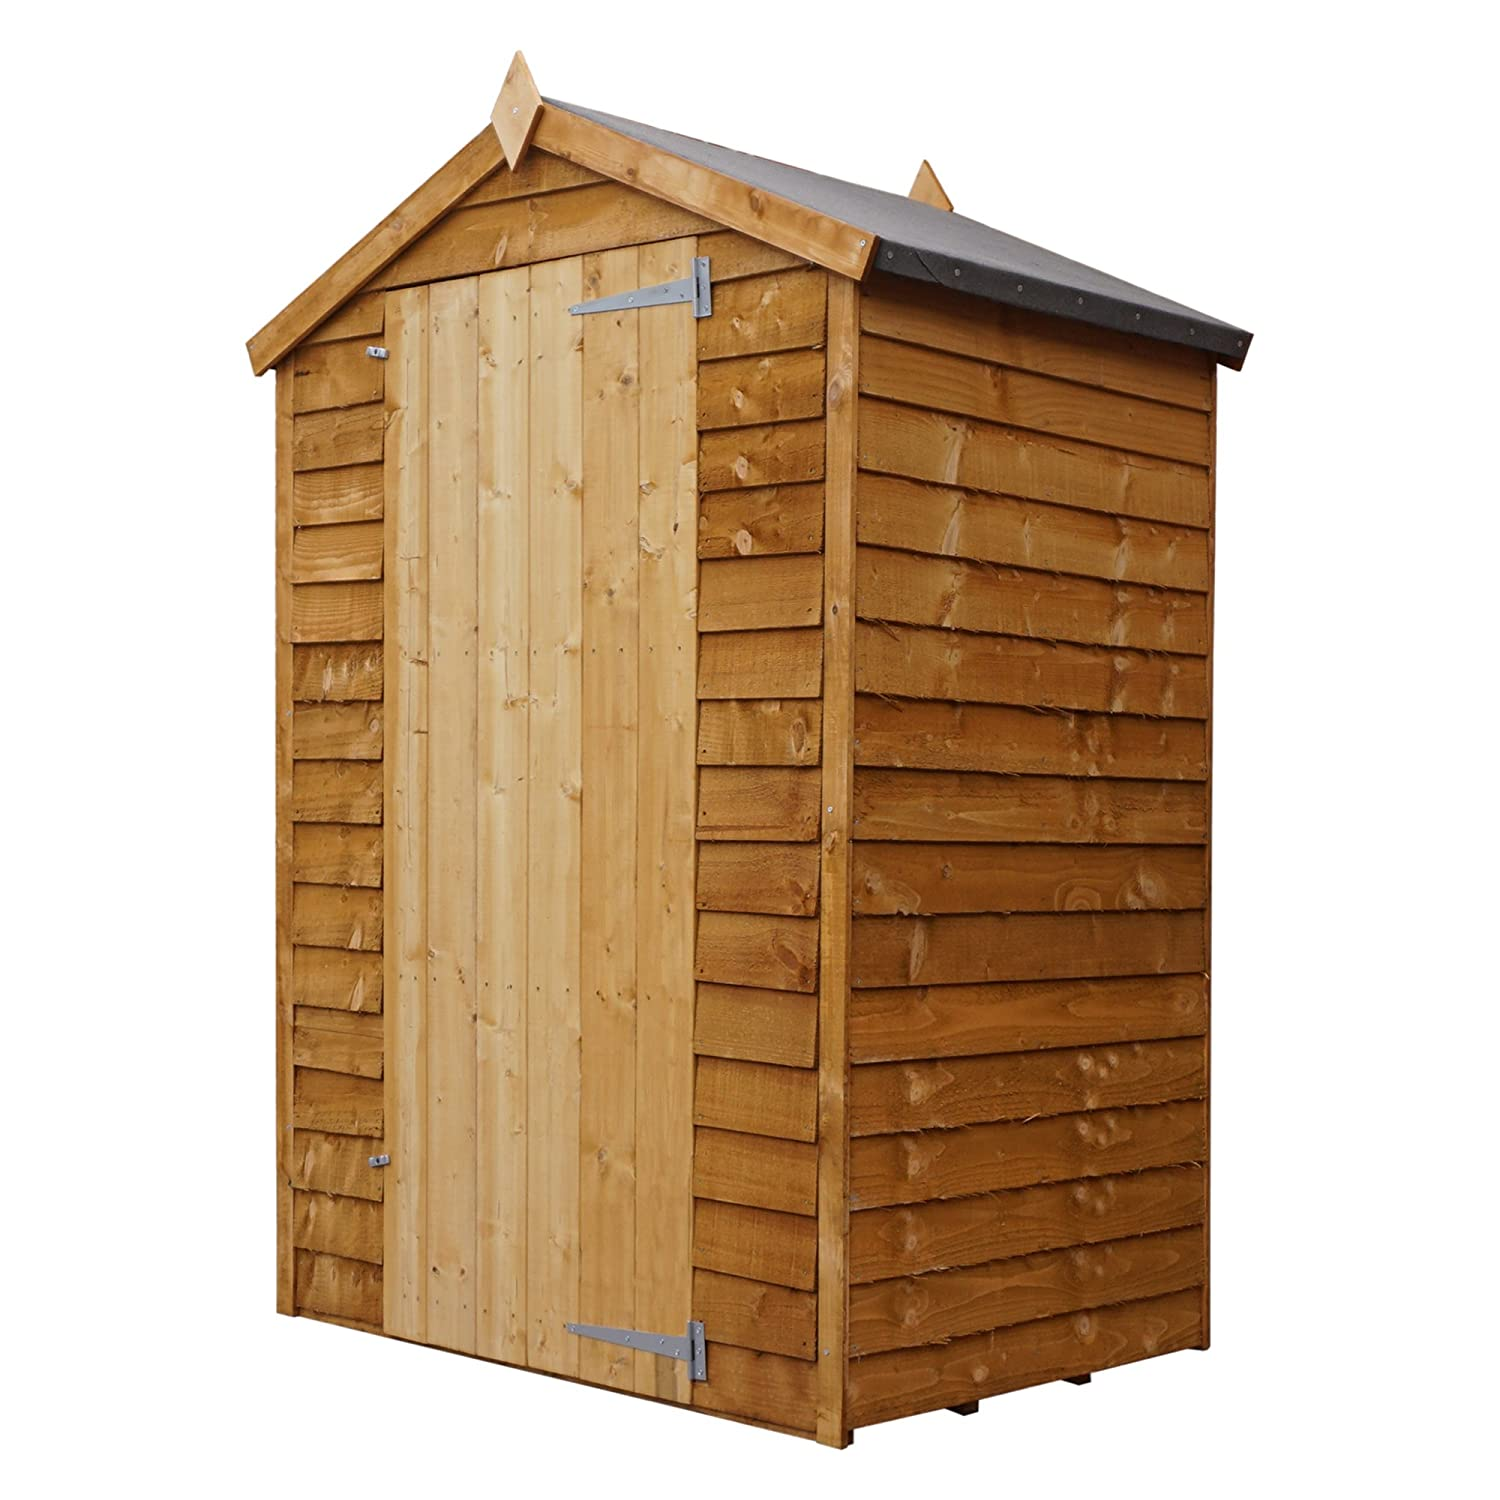 WALTONS EST. 1878 3x4 Wooden Garden Storage Shed, Overlap Construction Dip Treated with 10 Year Guarantee, Windowless, Single Door, Apex Roof, Roof Felt & Floor Included, (3 x 4 / 3ft x 4ft) 3-5 Day Delivery - By Waltons